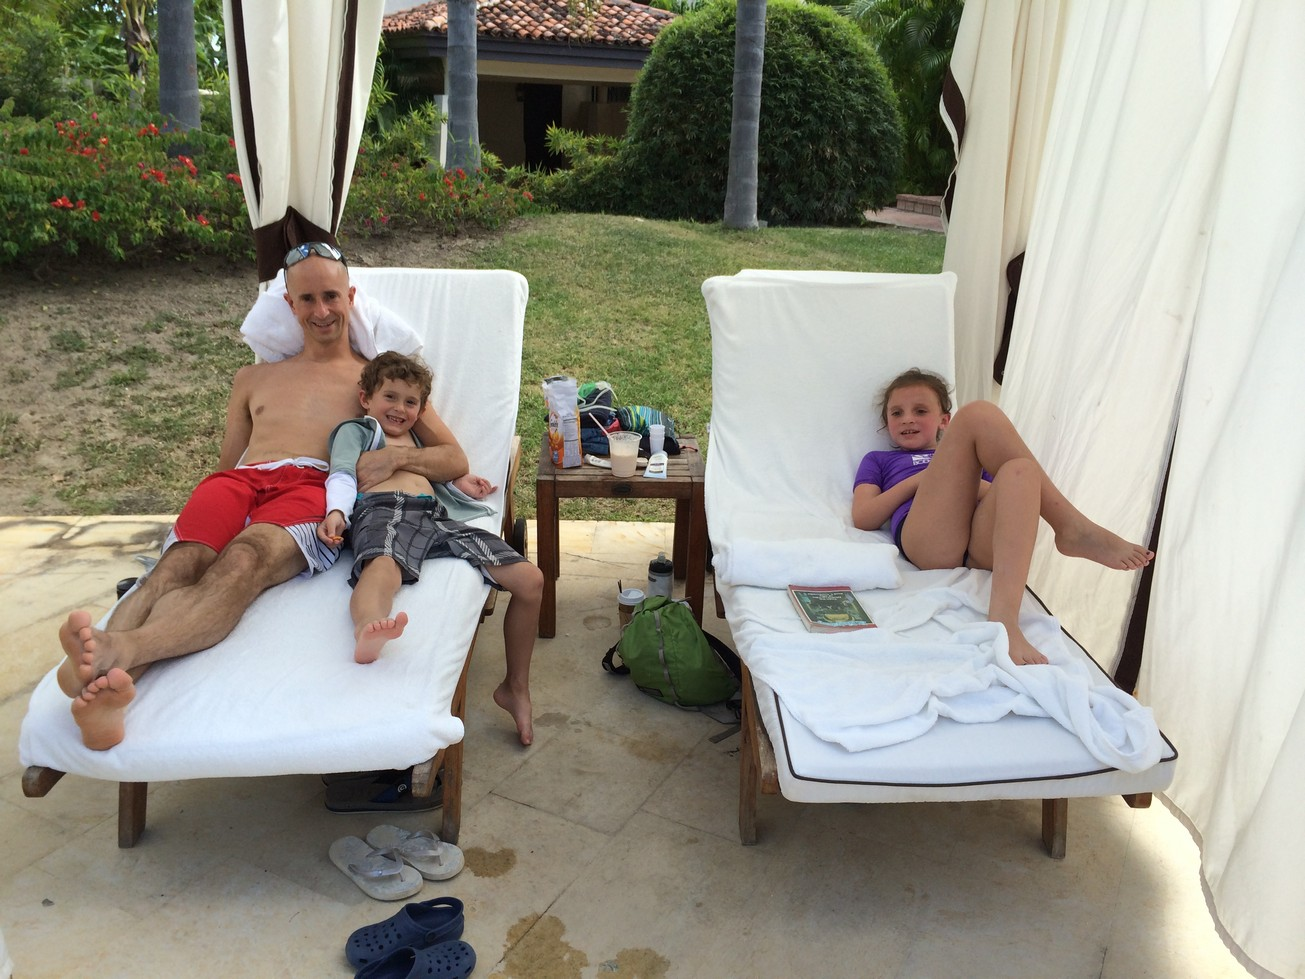 Lounging in our cabana while the fresh application of sunscreen sets in.